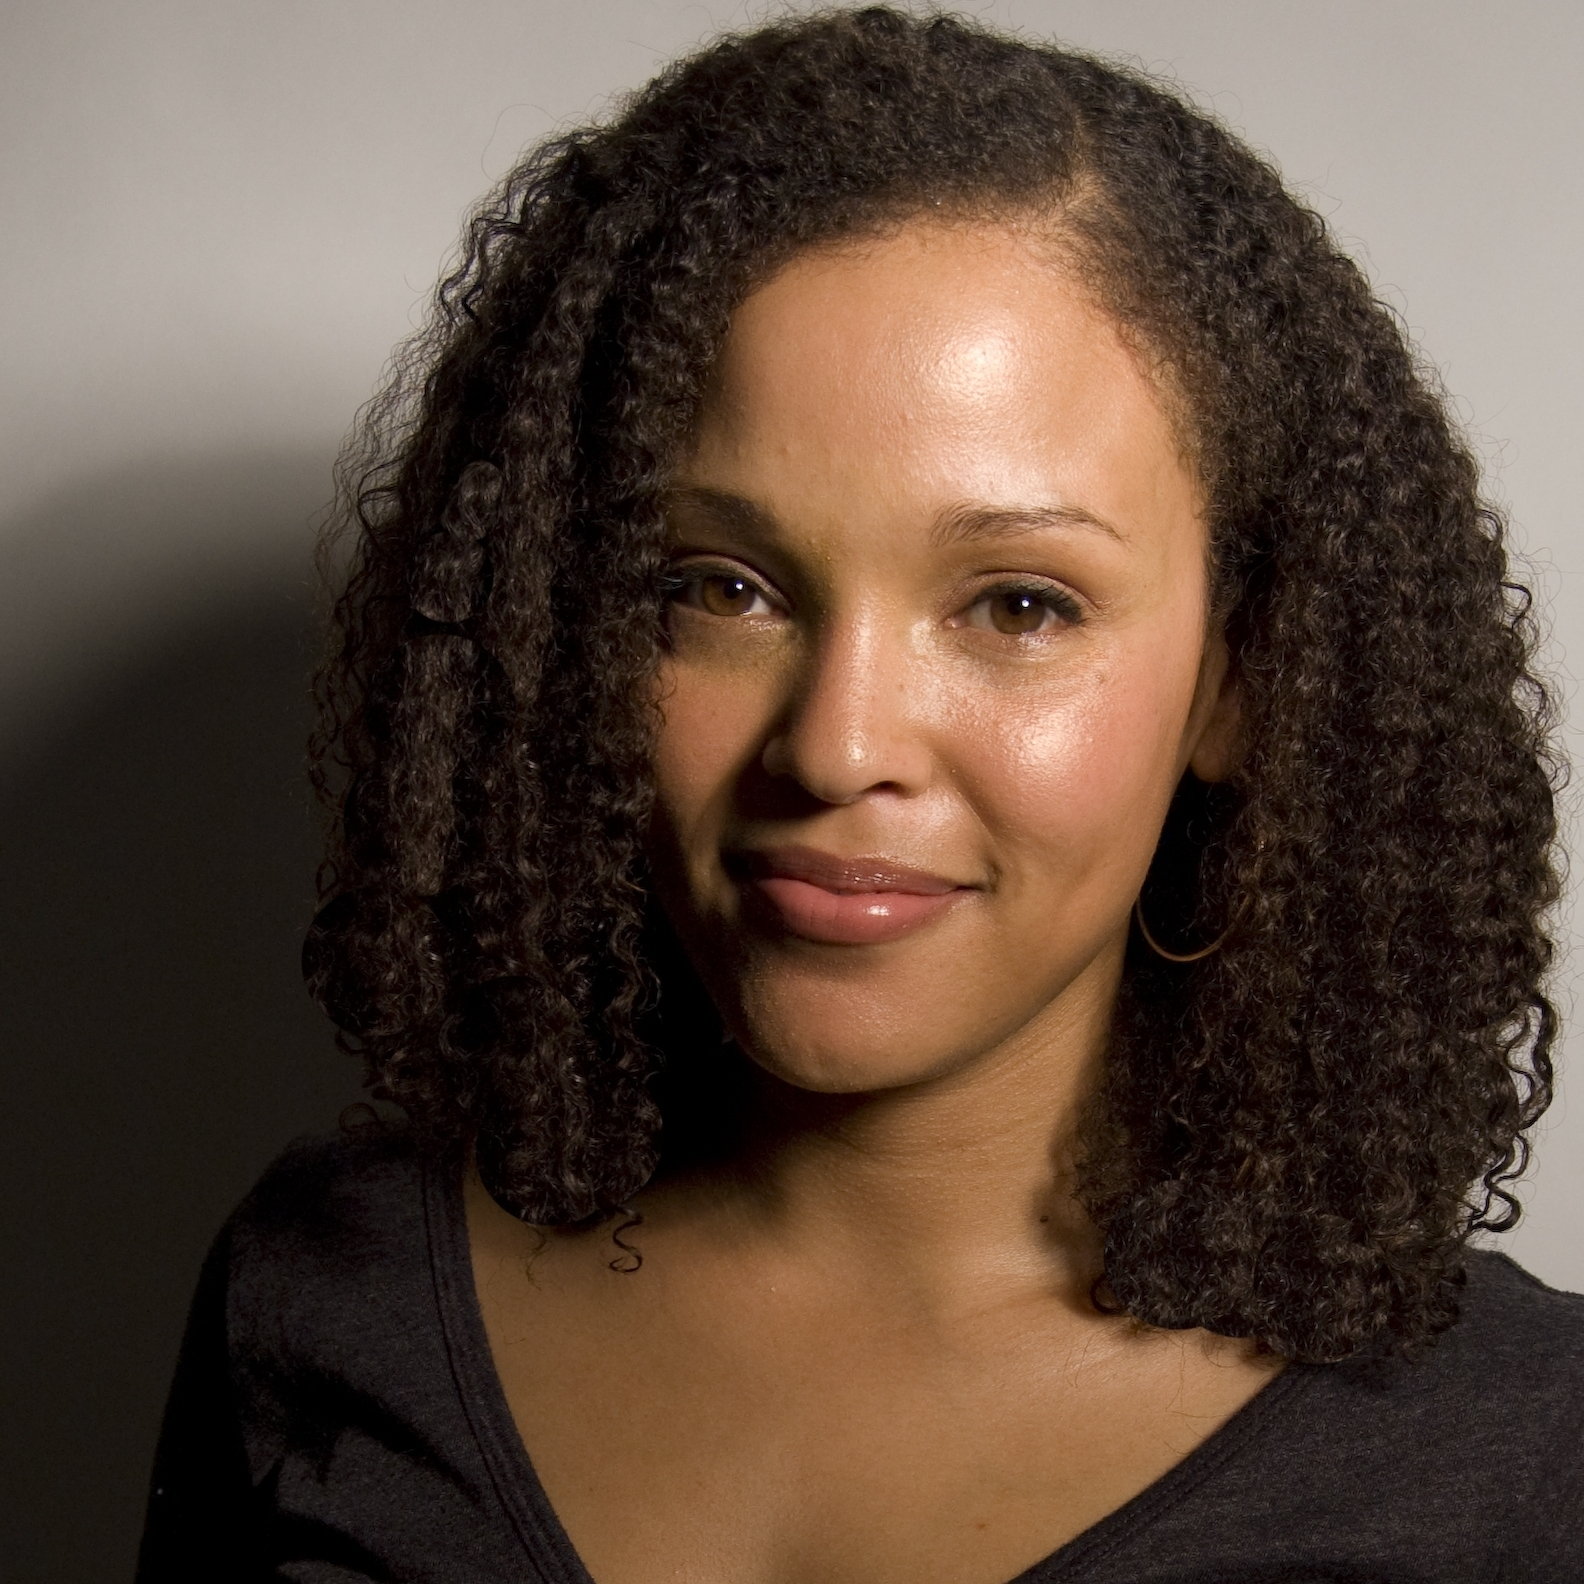 Jesmyn Ward won the National Book Award in 2011 for her novel Salvage the Bones.